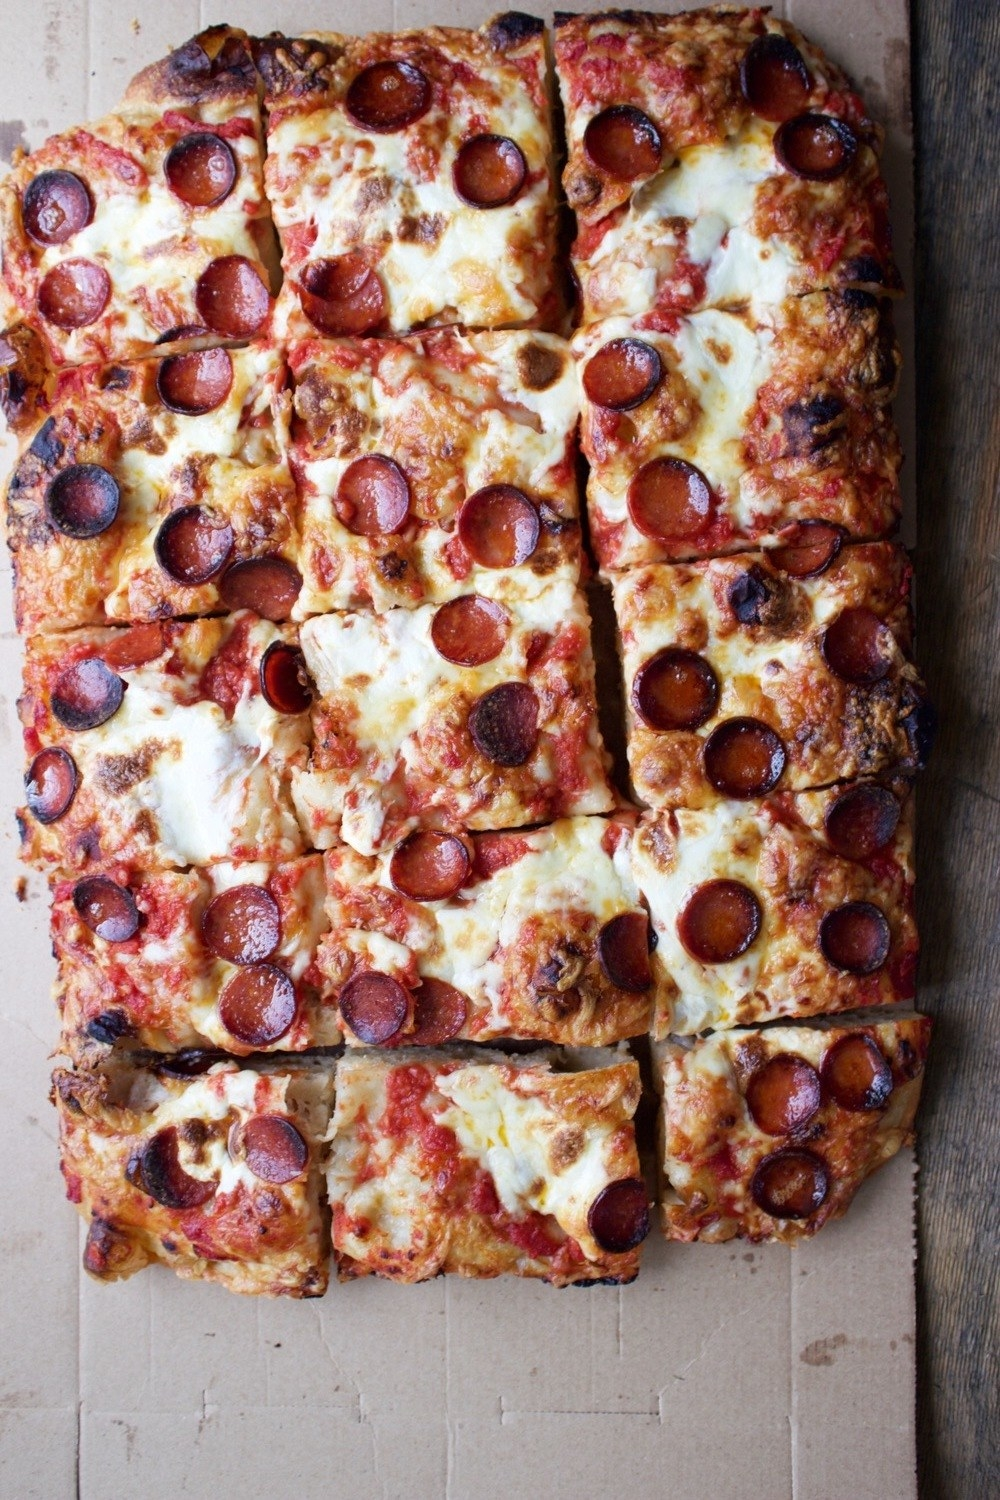 A thick crust Sicilian pizza with charred edges topped with pepperoni.